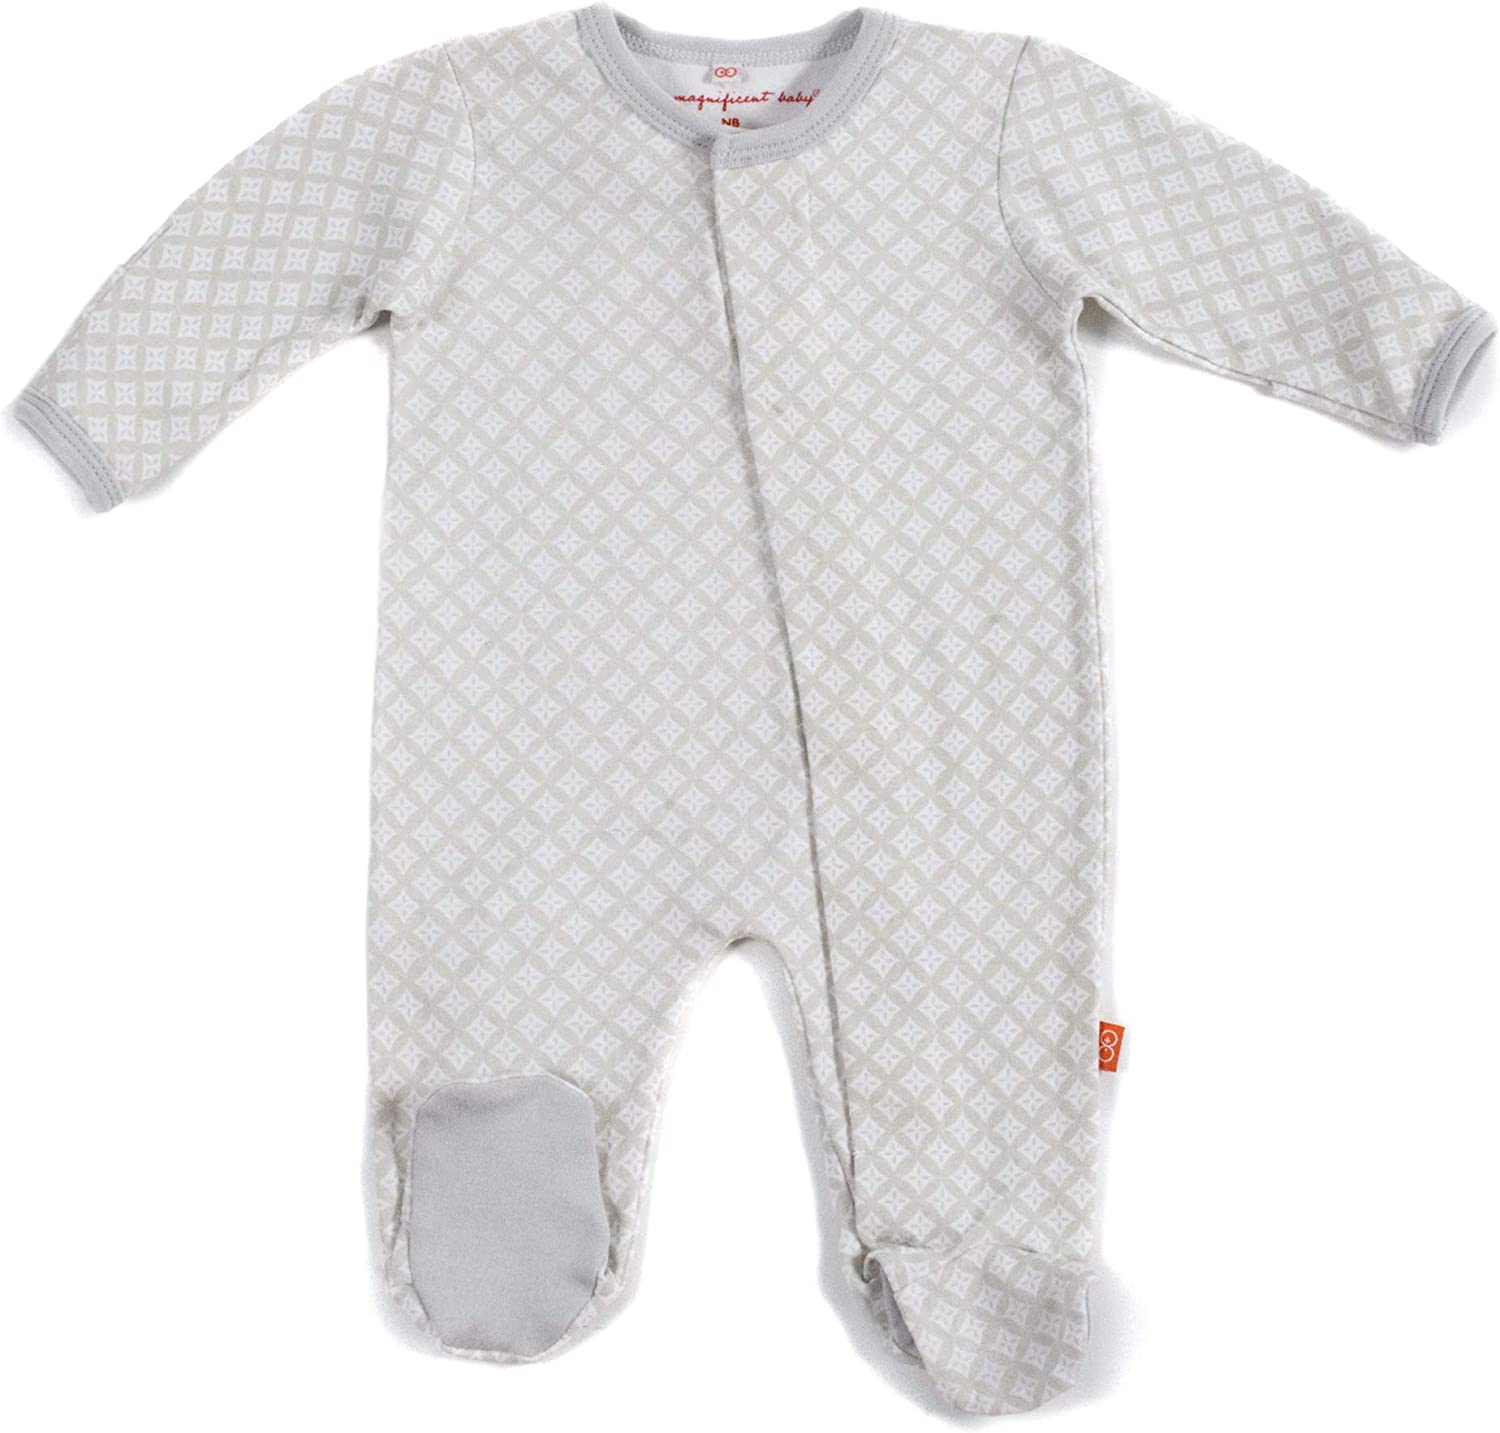 Magnificent Baby Baby Footies, Gray Diamond, 0-3M (8-12 lb)